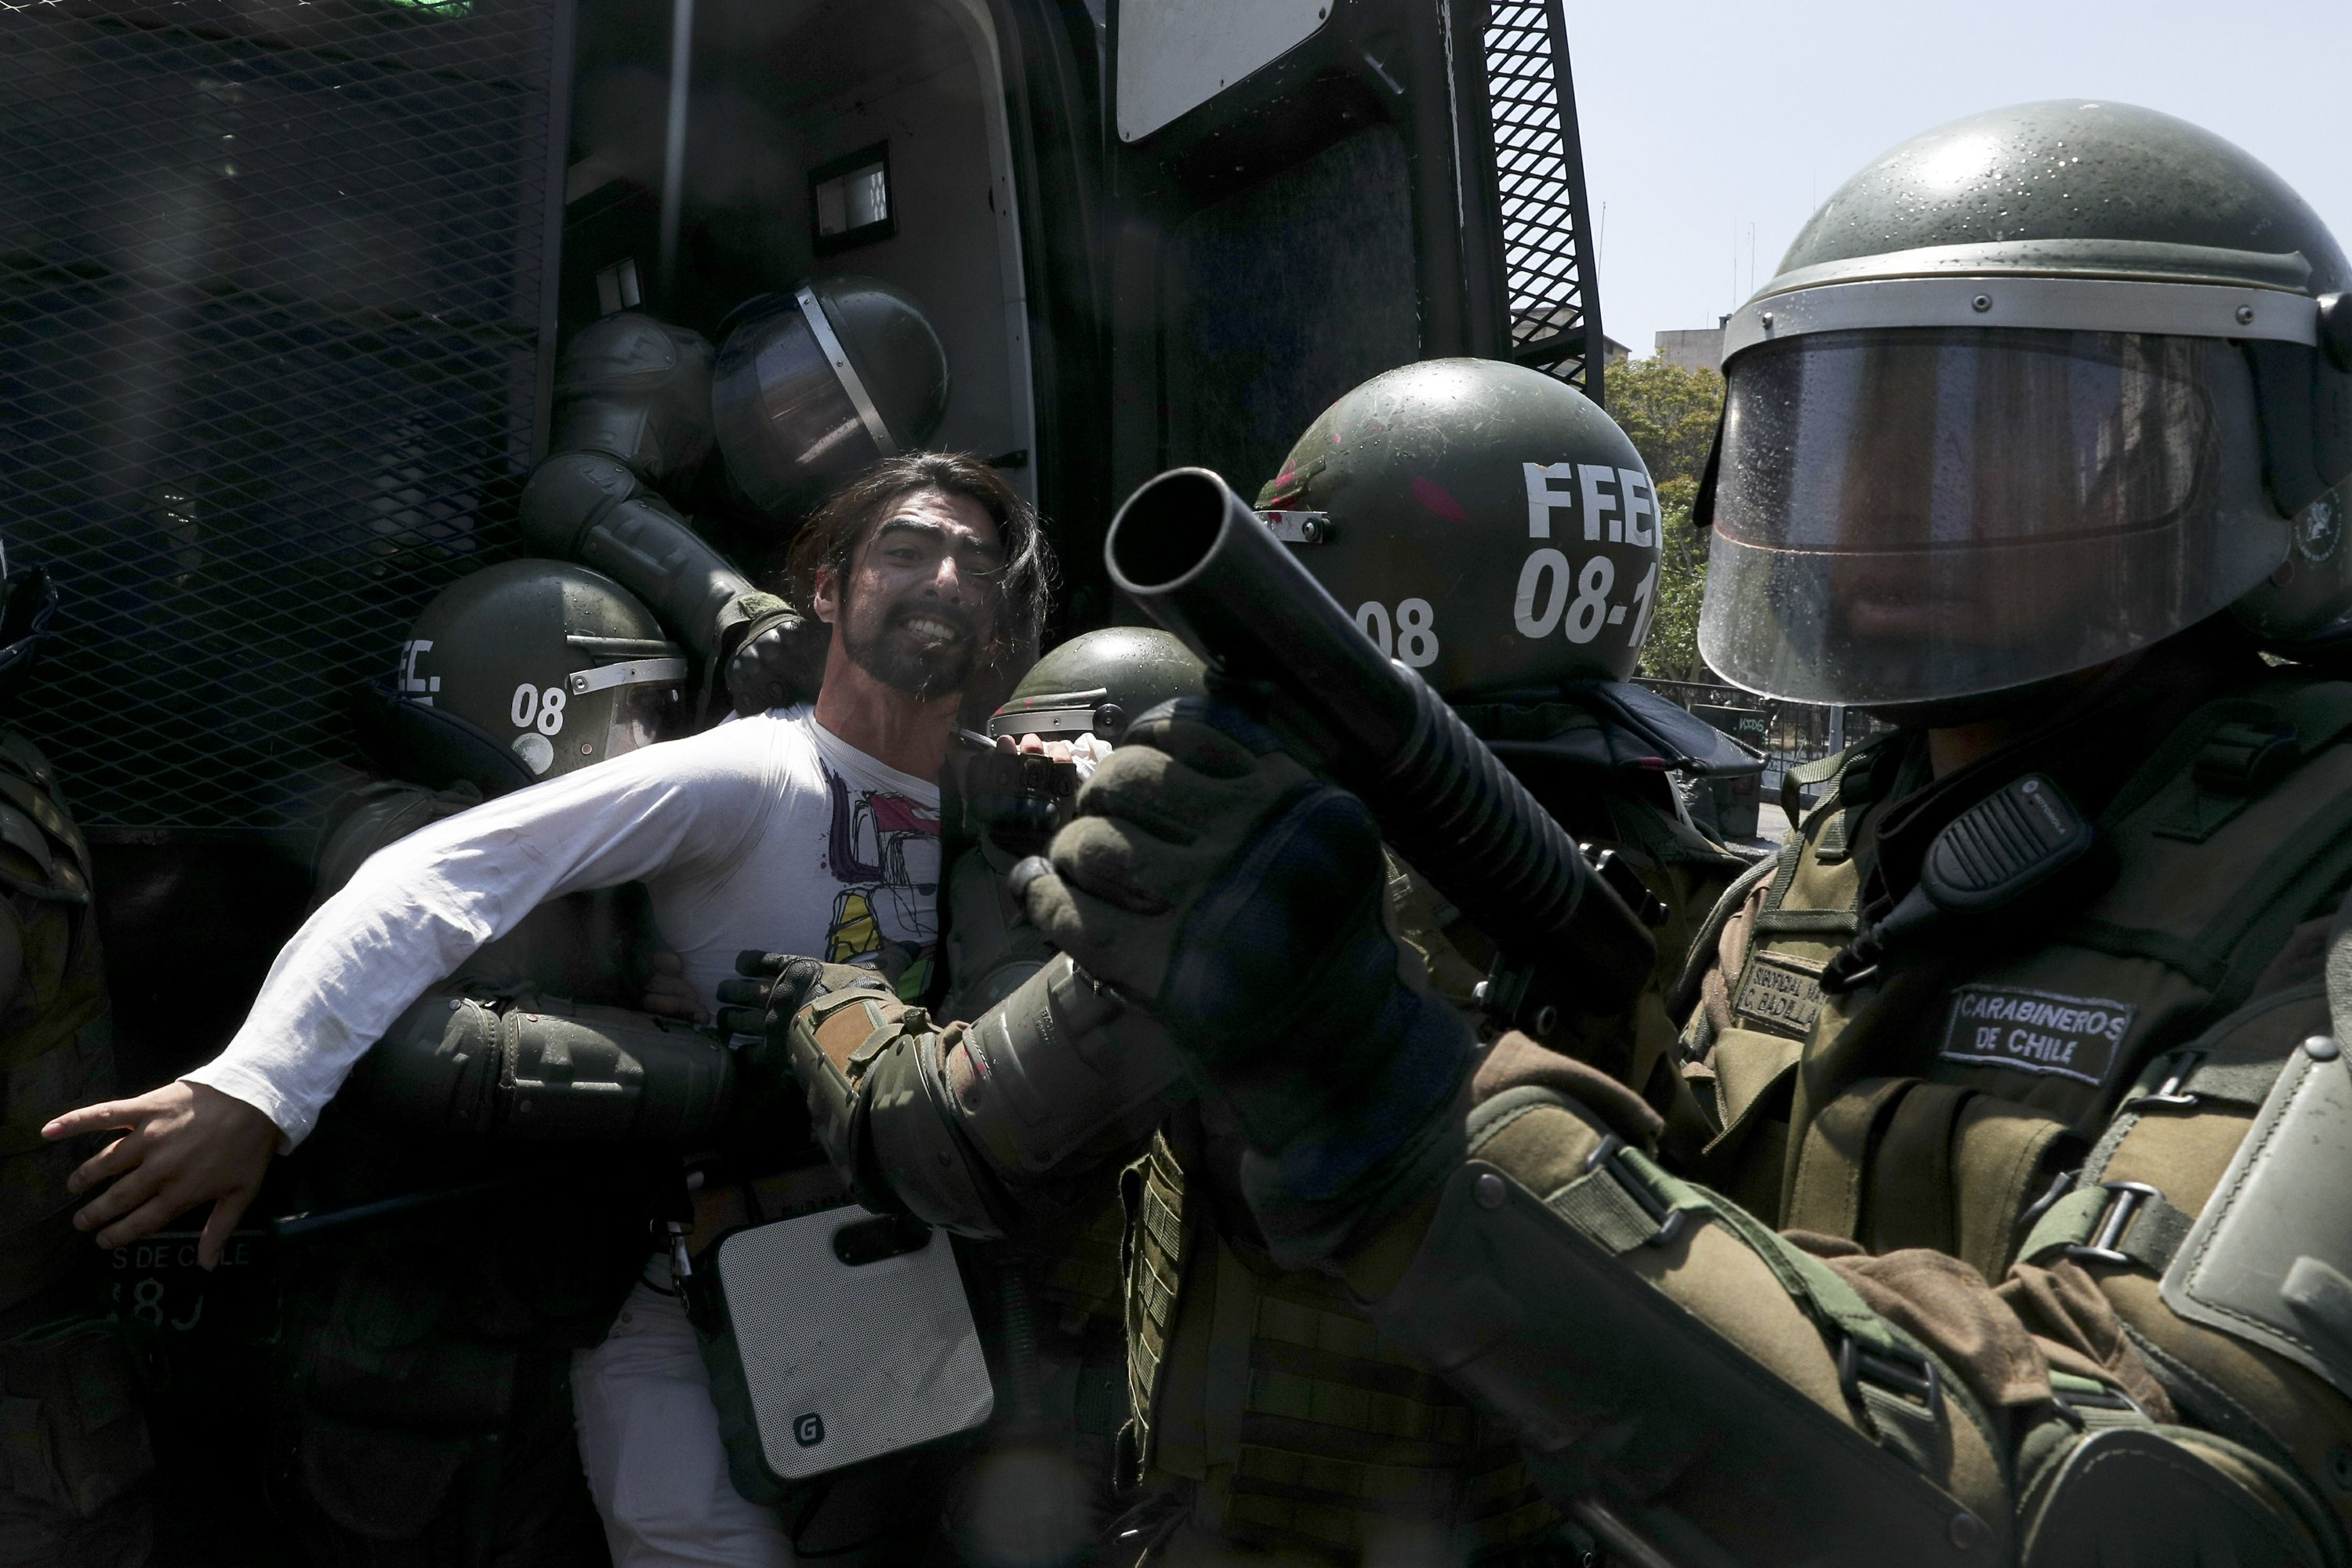 Death toll in Chile protests rises to 15